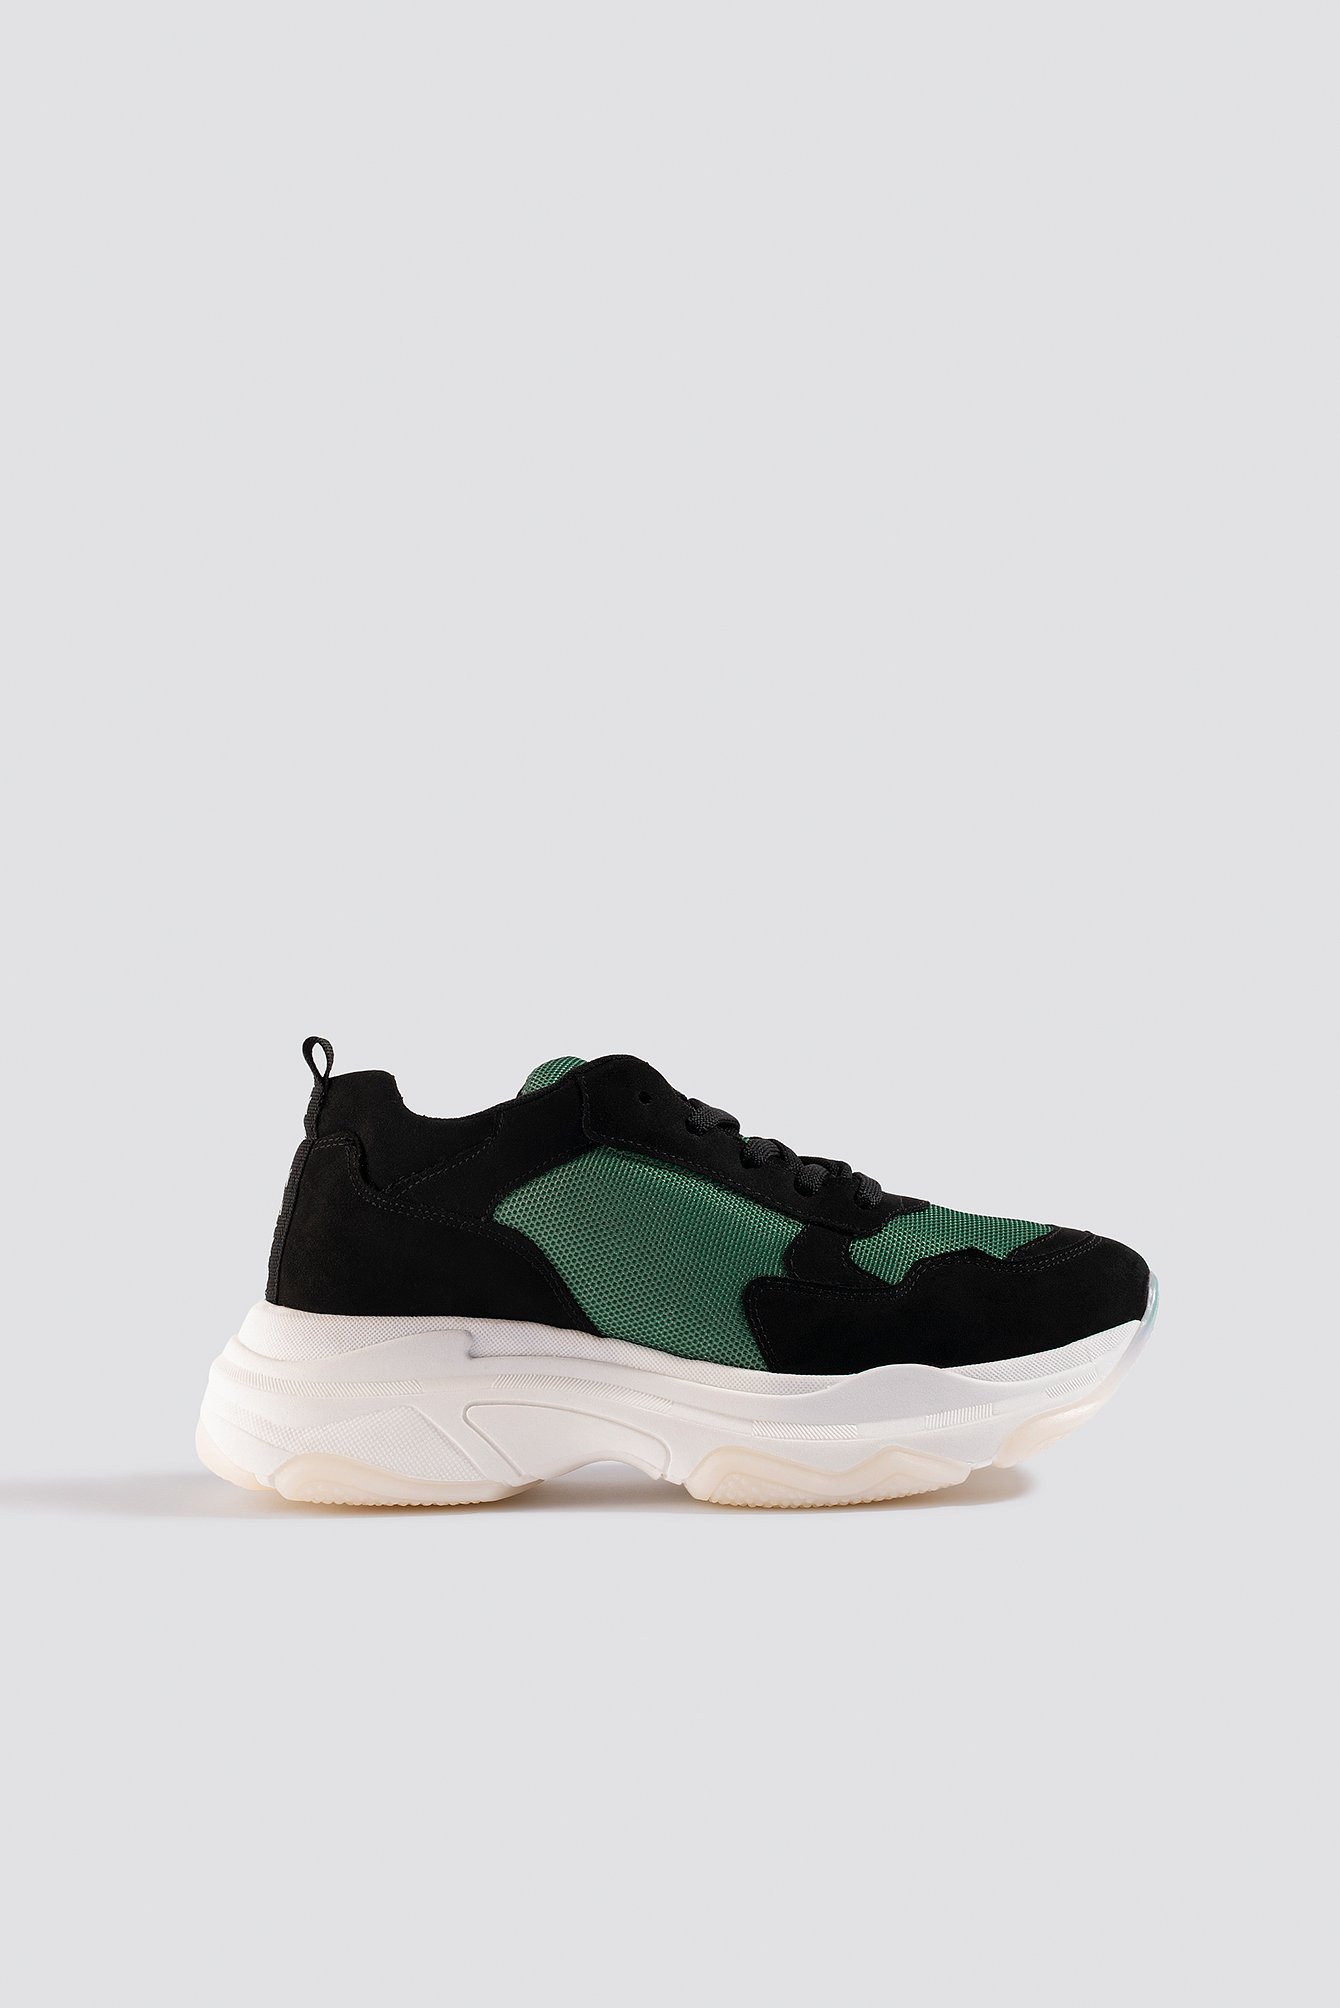 NA-KD Shoes Chunky Green Sneakers - Black,Green